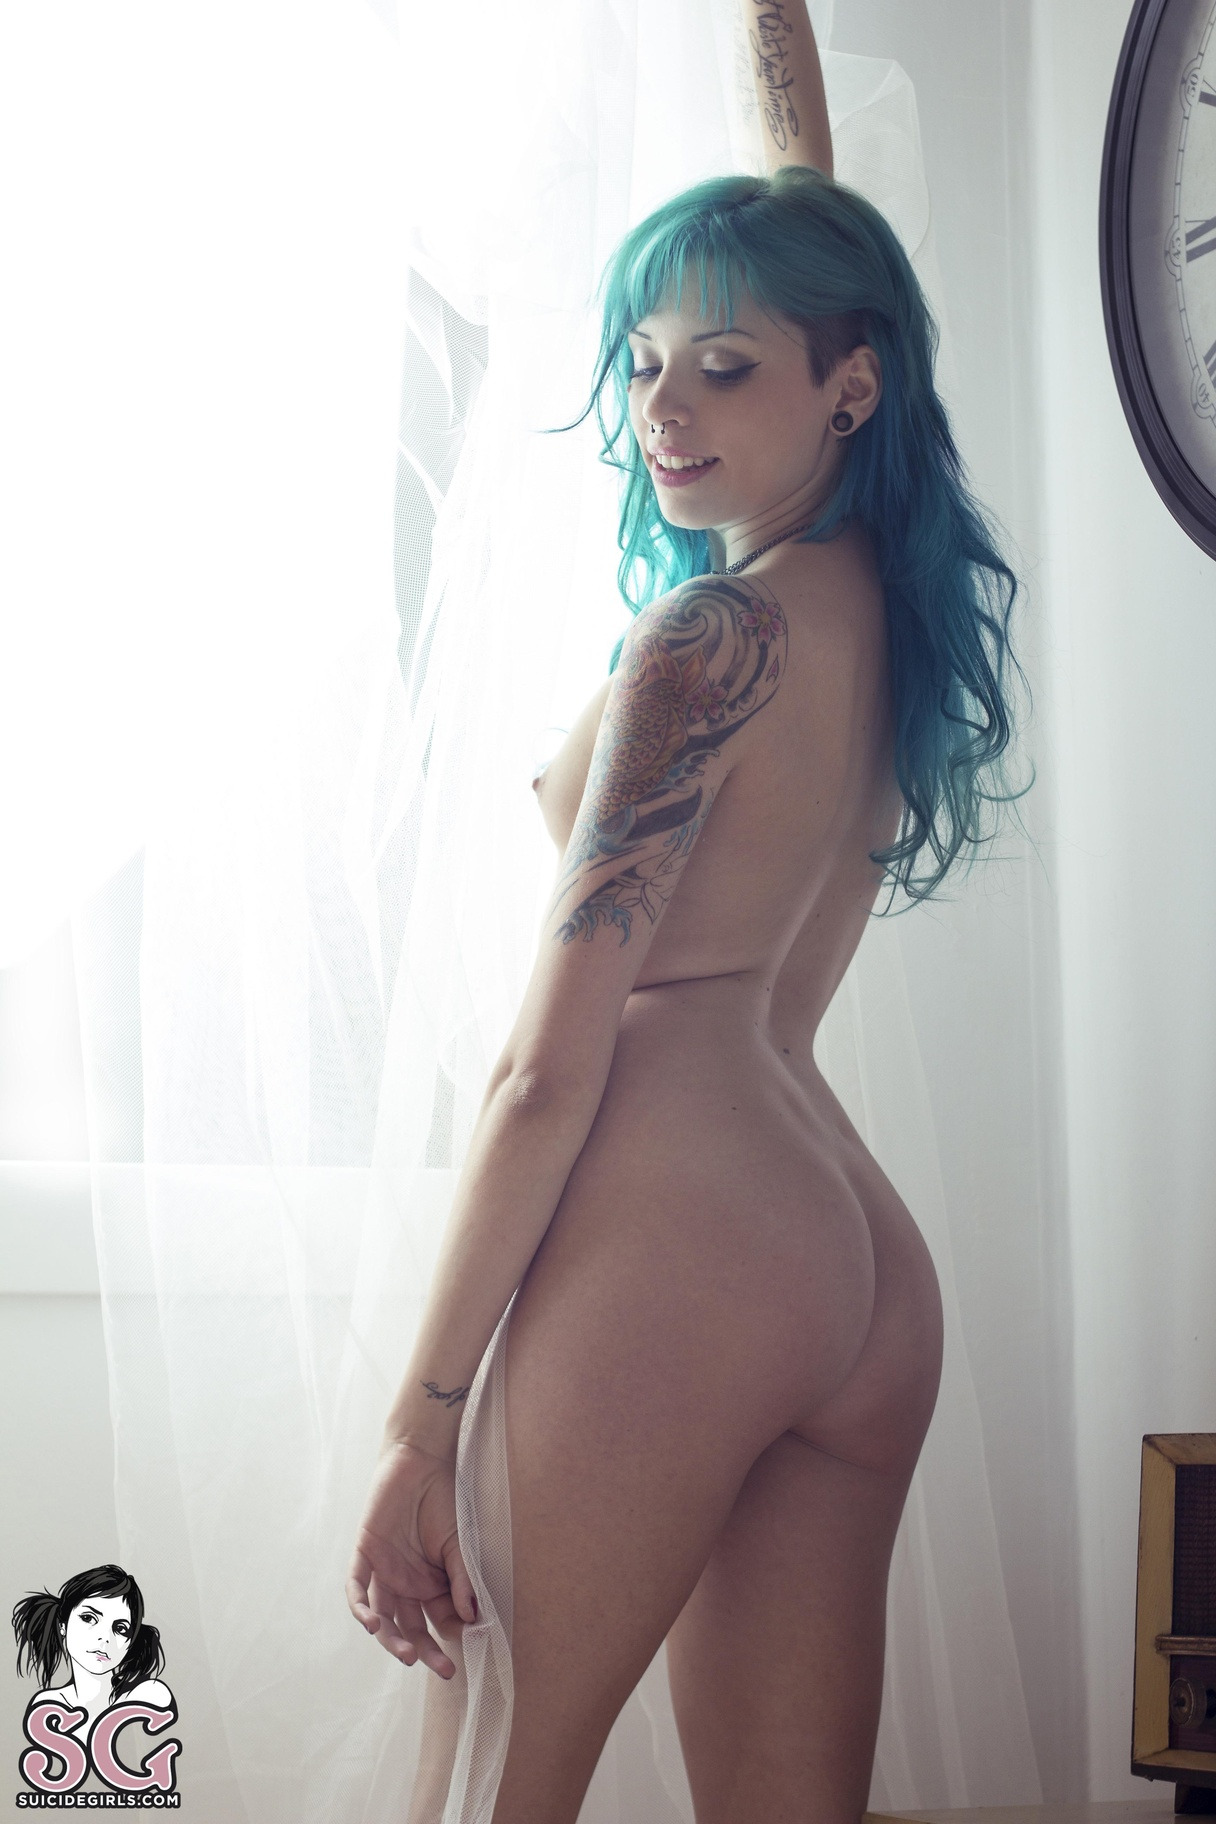 suicide-girls-mix-nude-tattoos-vol8-92